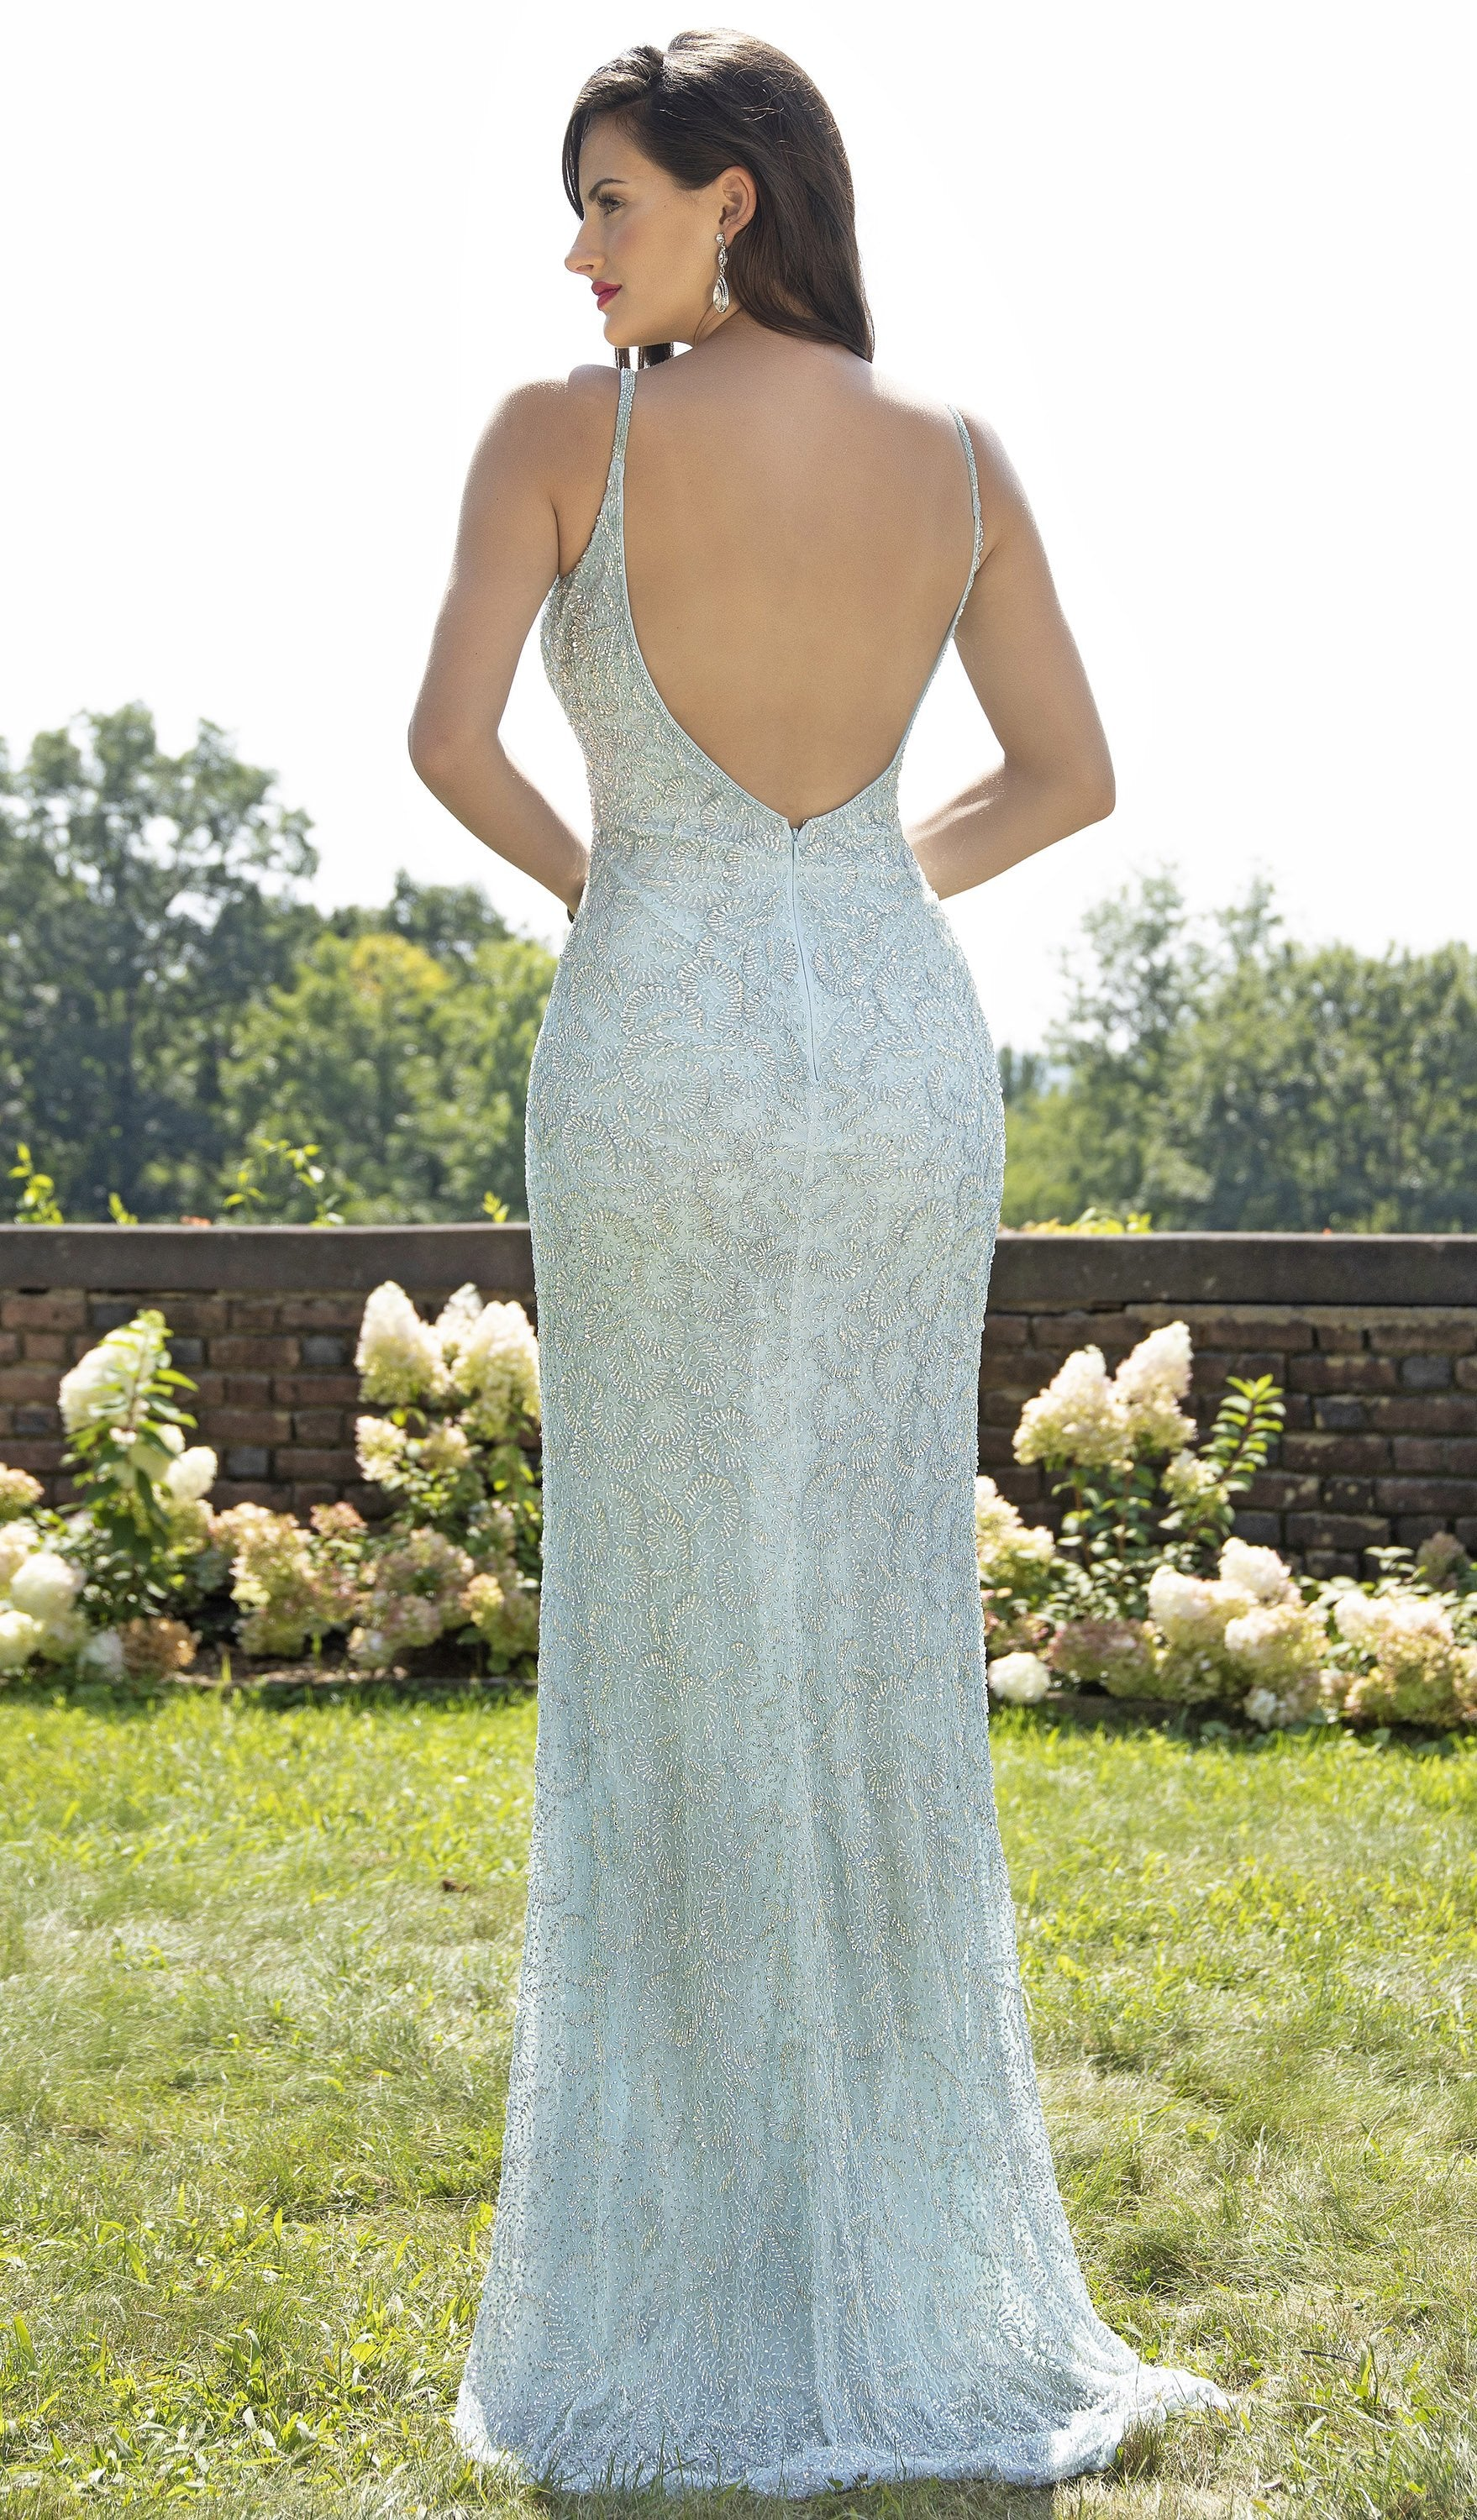 Primavera Couture - 3209 Sequined Embellished Plunging V Neck Gown In Blue